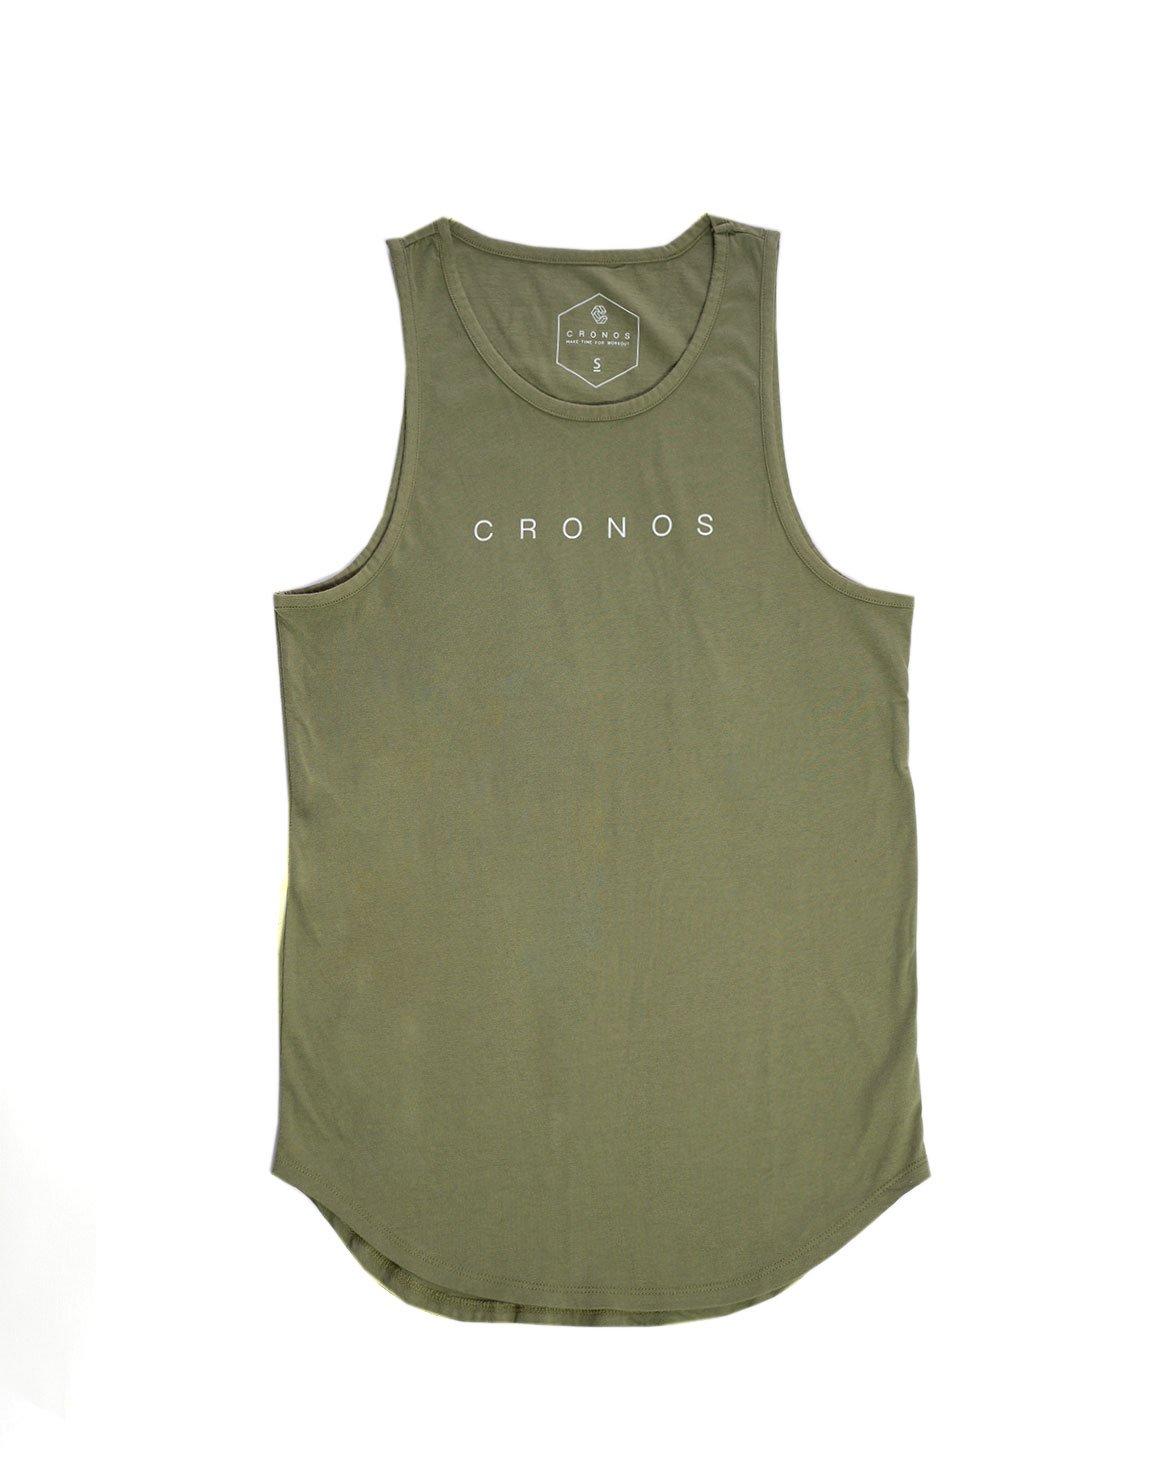 <img class='new_mark_img1' src='https://img.shop-pro.jp/img/new/icons1.gif' style='border:none;display:inline;margin:0px;padding:0px;width:auto;' />CRONOS LOGO TANKTOP KHAKI